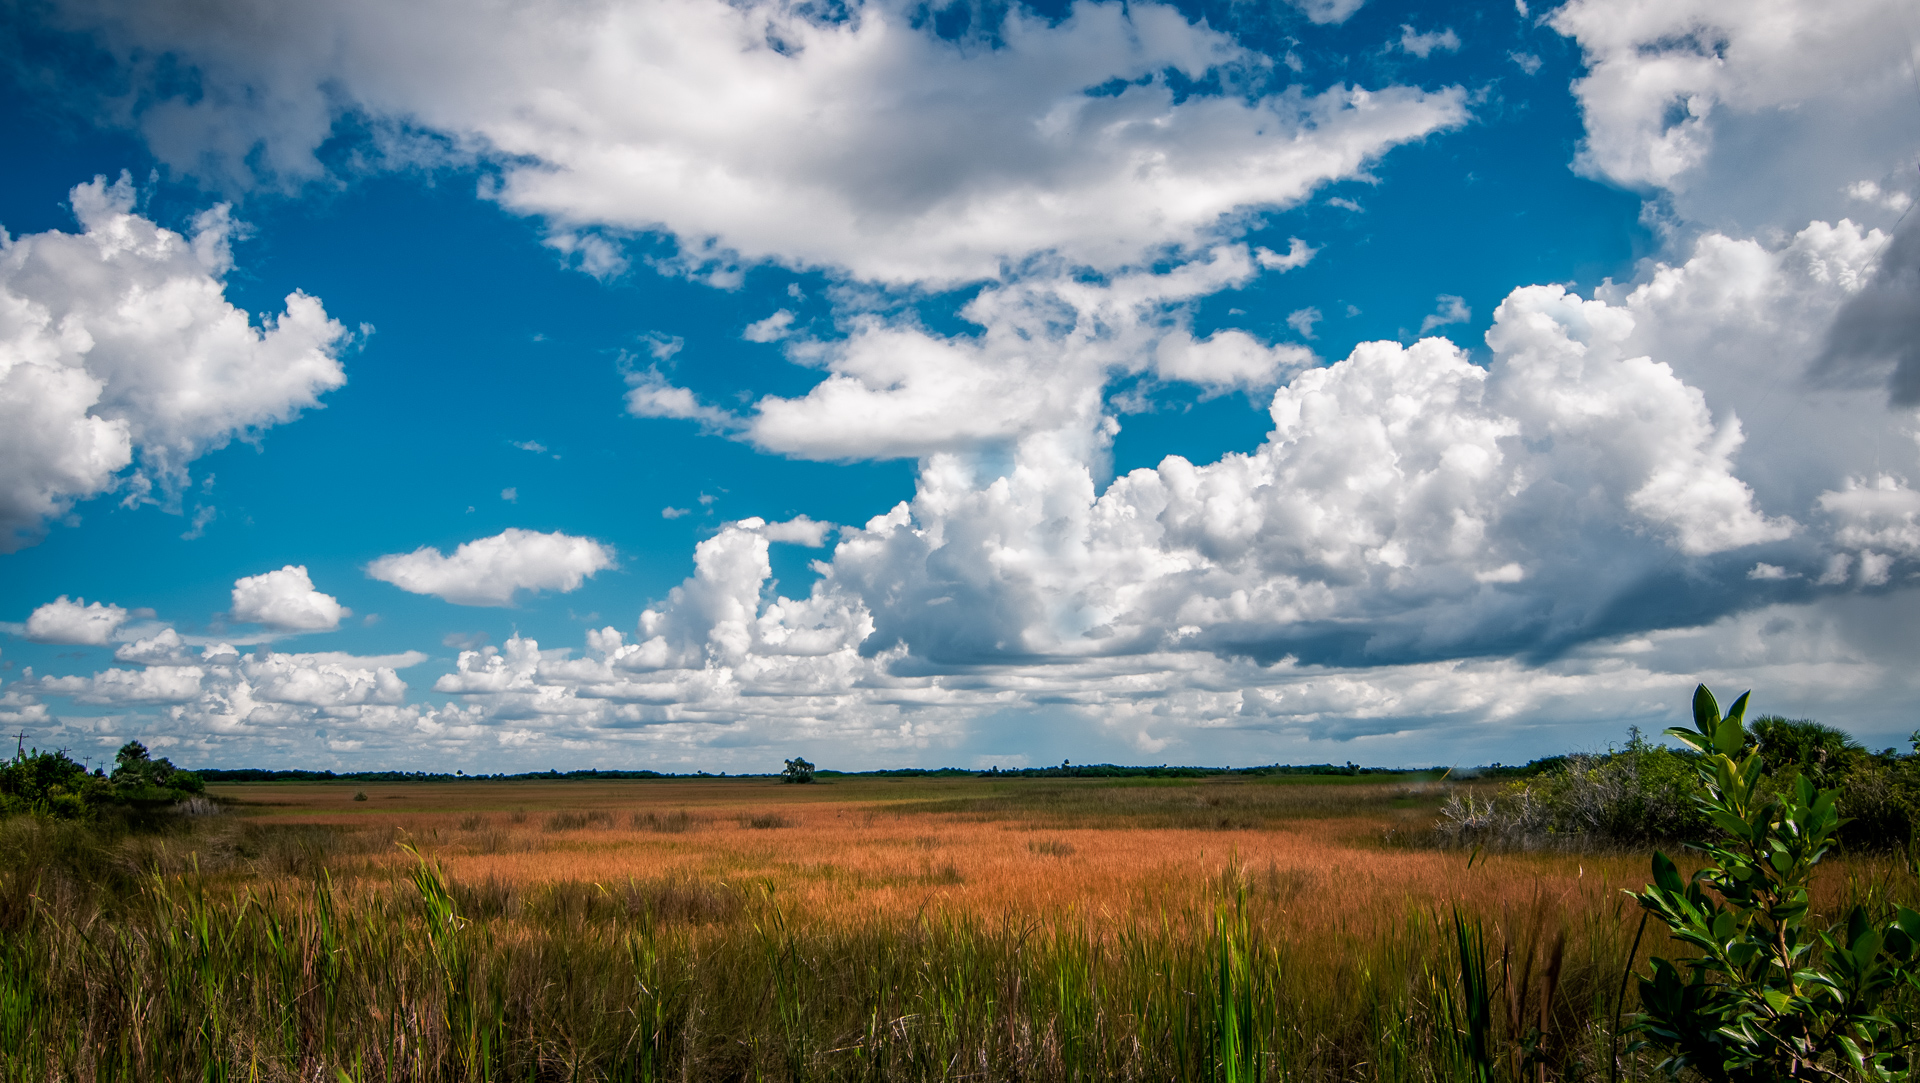 Everglades, a River of Grass